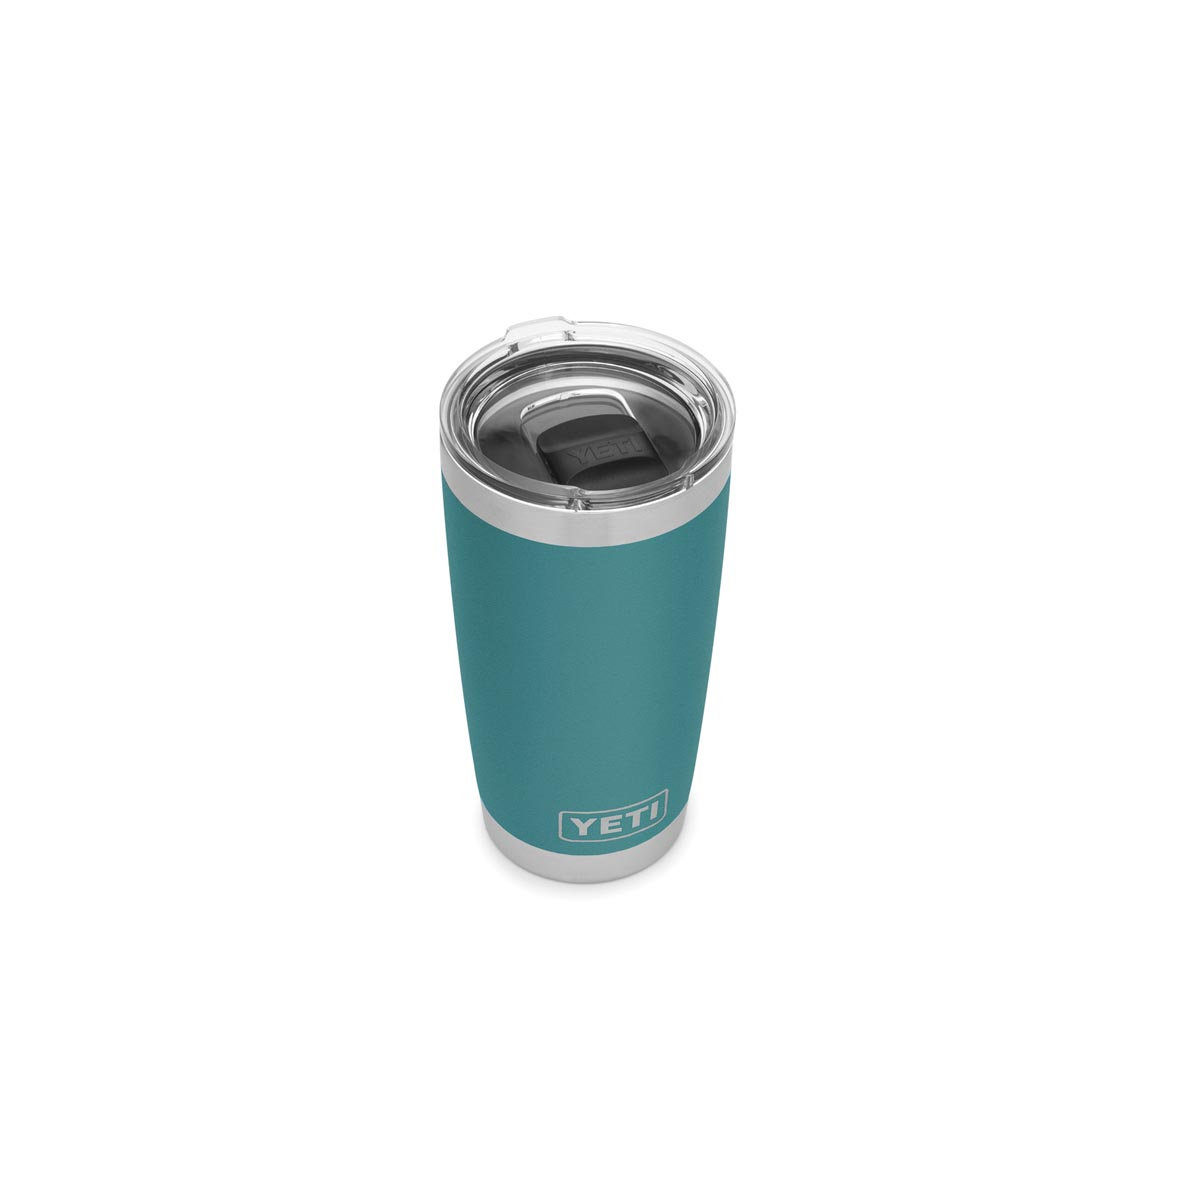 Picture of YETI Rambler 21070060057 Tumbler, 20 oz Capacity, MagSlider Lid, Stainless Steel, River Green, Insulated